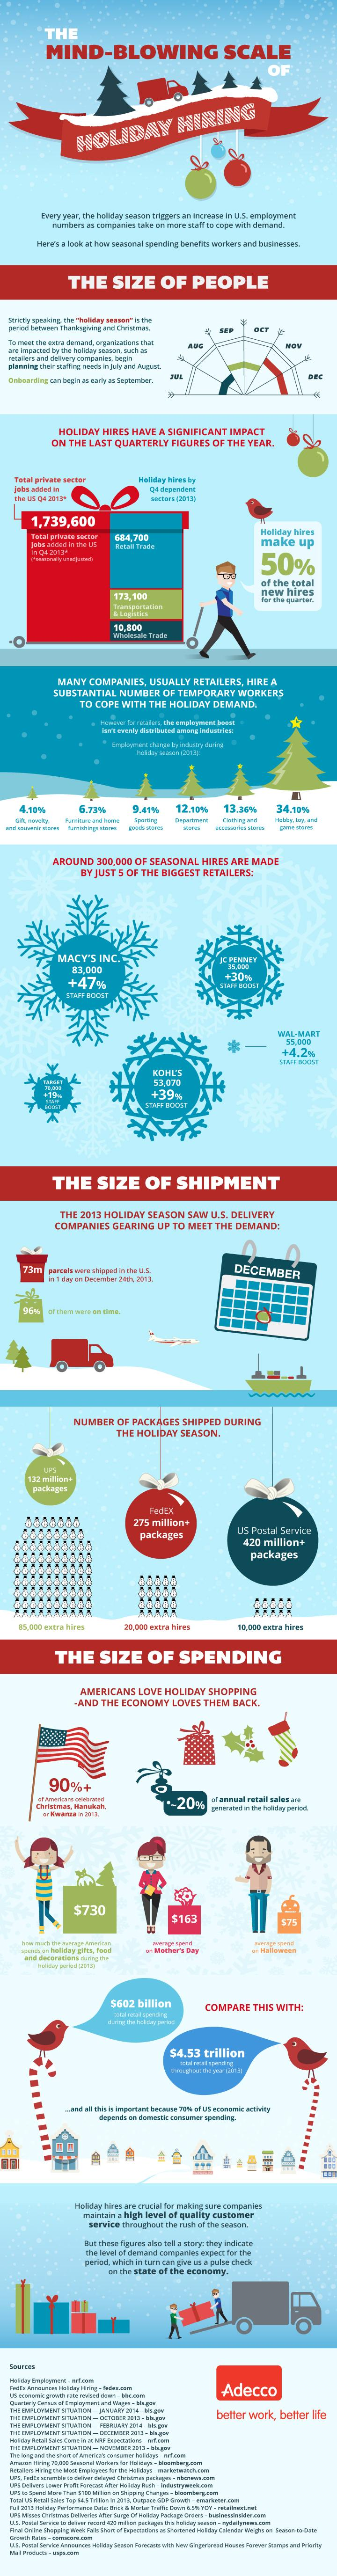 Mind-blowing-Scale-of-the-Holiday-Season